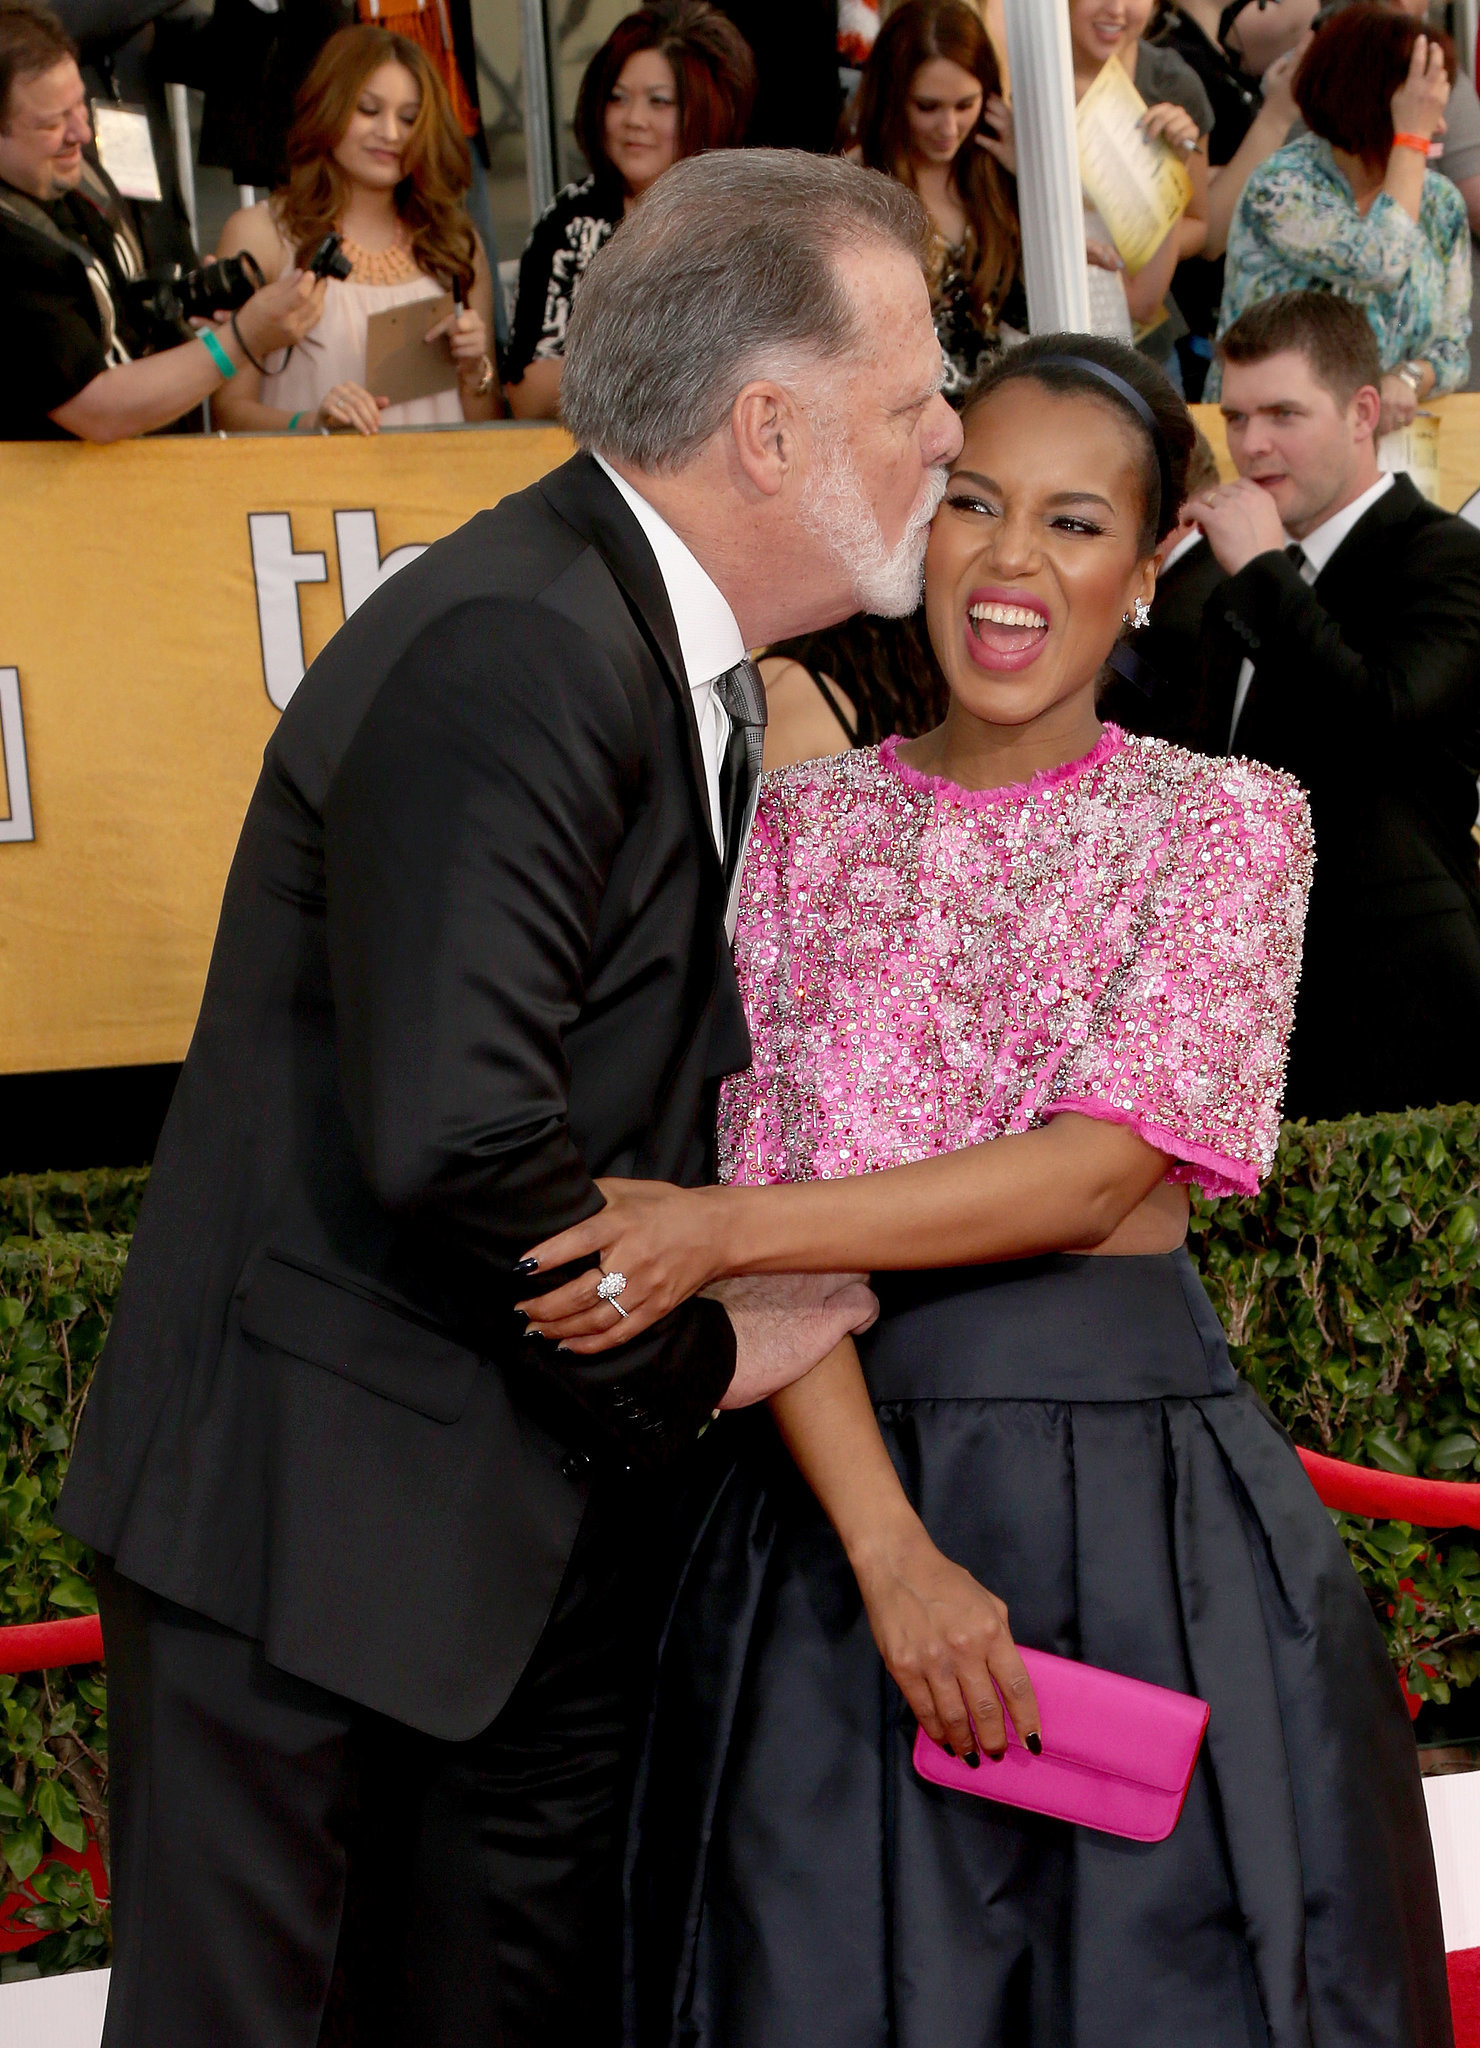 Kerry Washington enjoyed a silly kiss from director (and husband to Helen Mirren) Taylor Hackford at the SAGs.